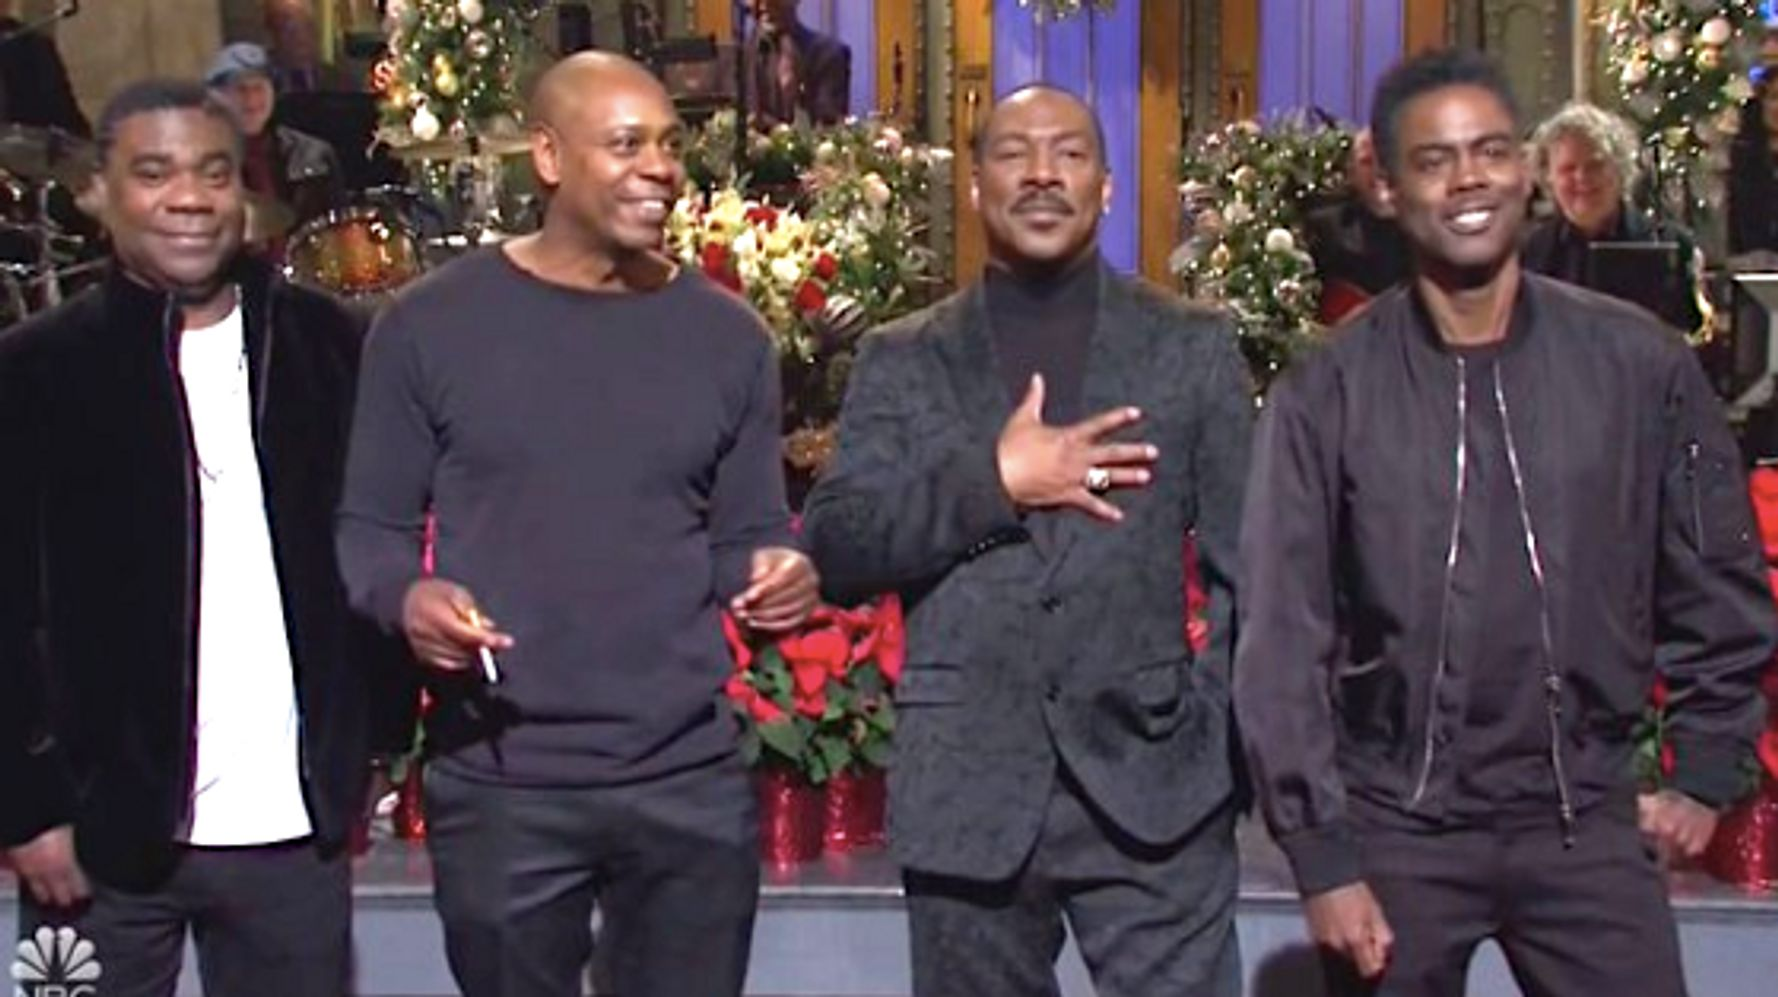 Eddie Murphy Taunts Bill Cosby In 'SNL' Monologue: 'Who's America's Dad NOW?'